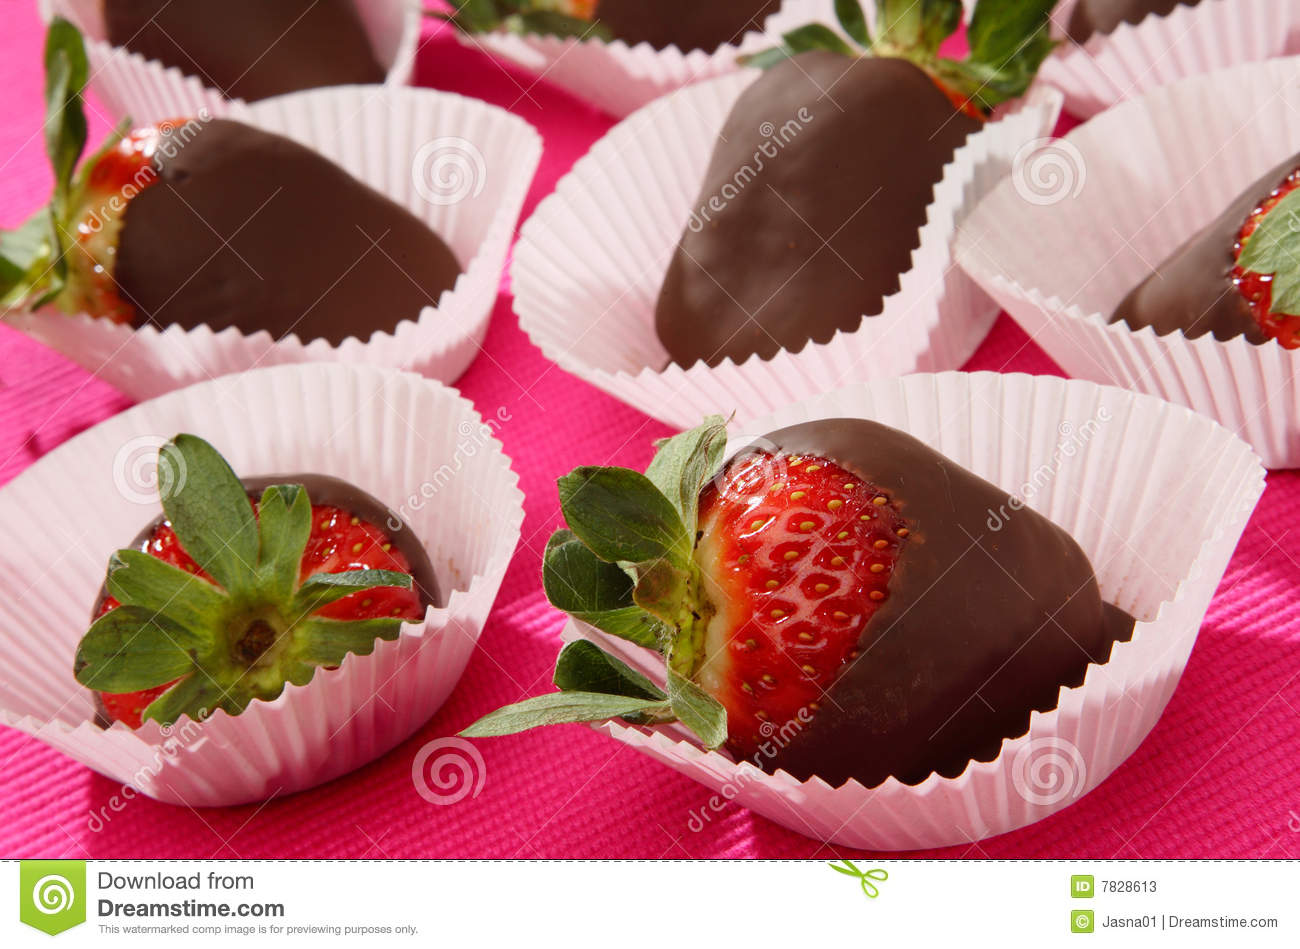 Fresh strawberries in melted chocolate